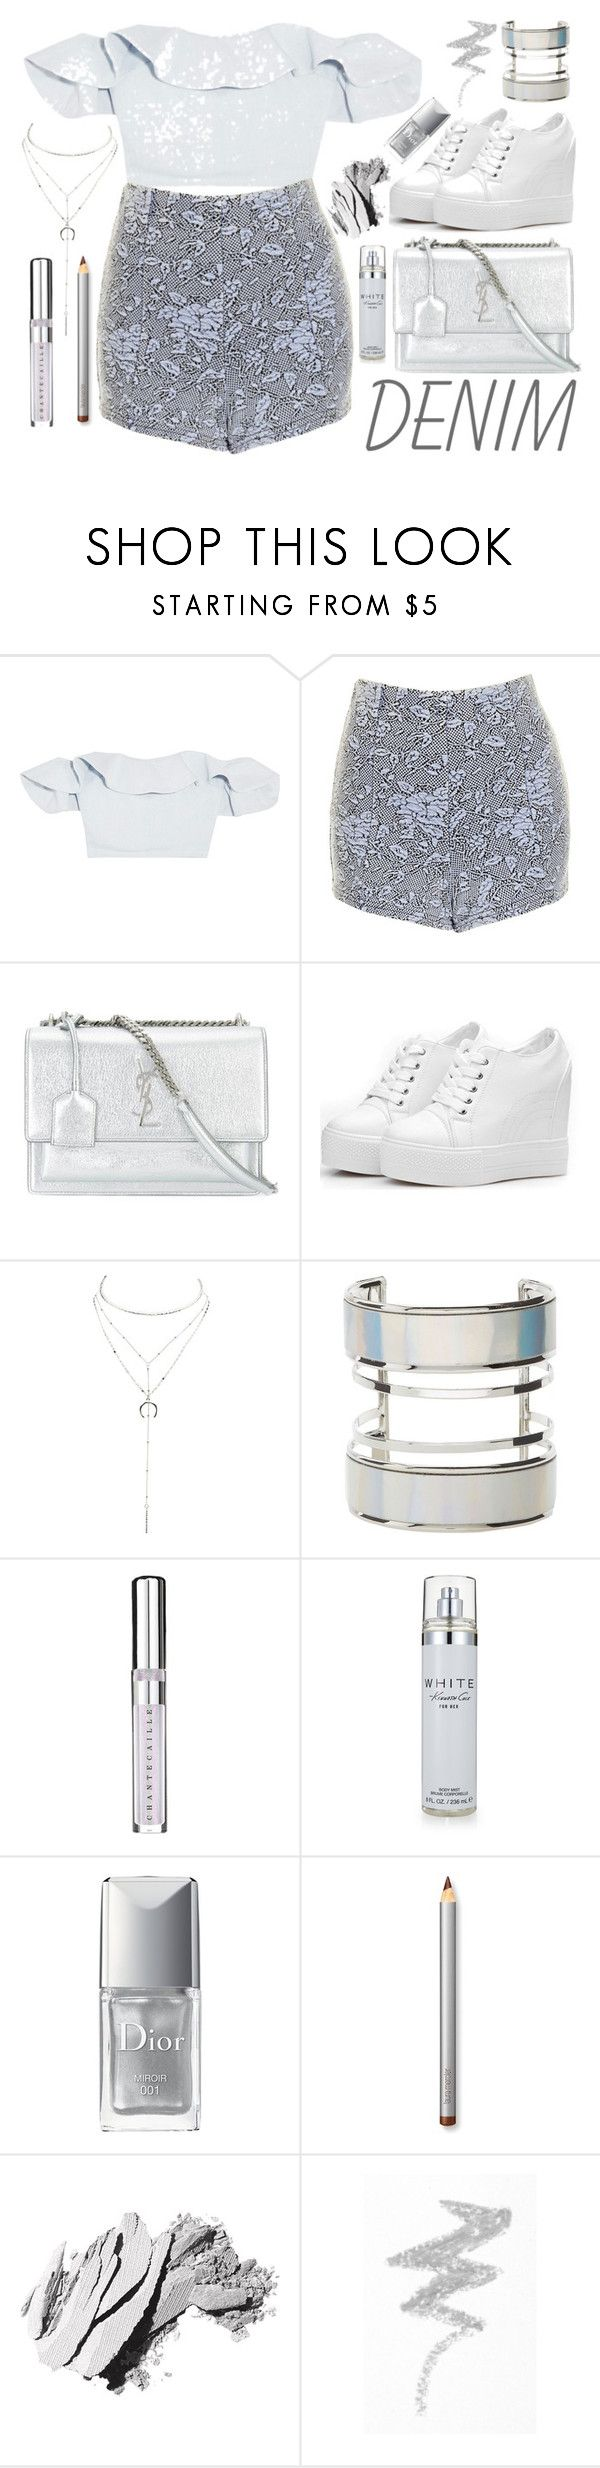 """Fancy"" by galaxy-moon-stars ❤ liked on Polyvore featuring Apiece Apart, Topshop, Yves Saint Laurent, Charlotte Russe, Chantecaille, Kenneth Cole, Christian Dior, Laura Mercier, Bobbi Brown Cosmetics and NYX"